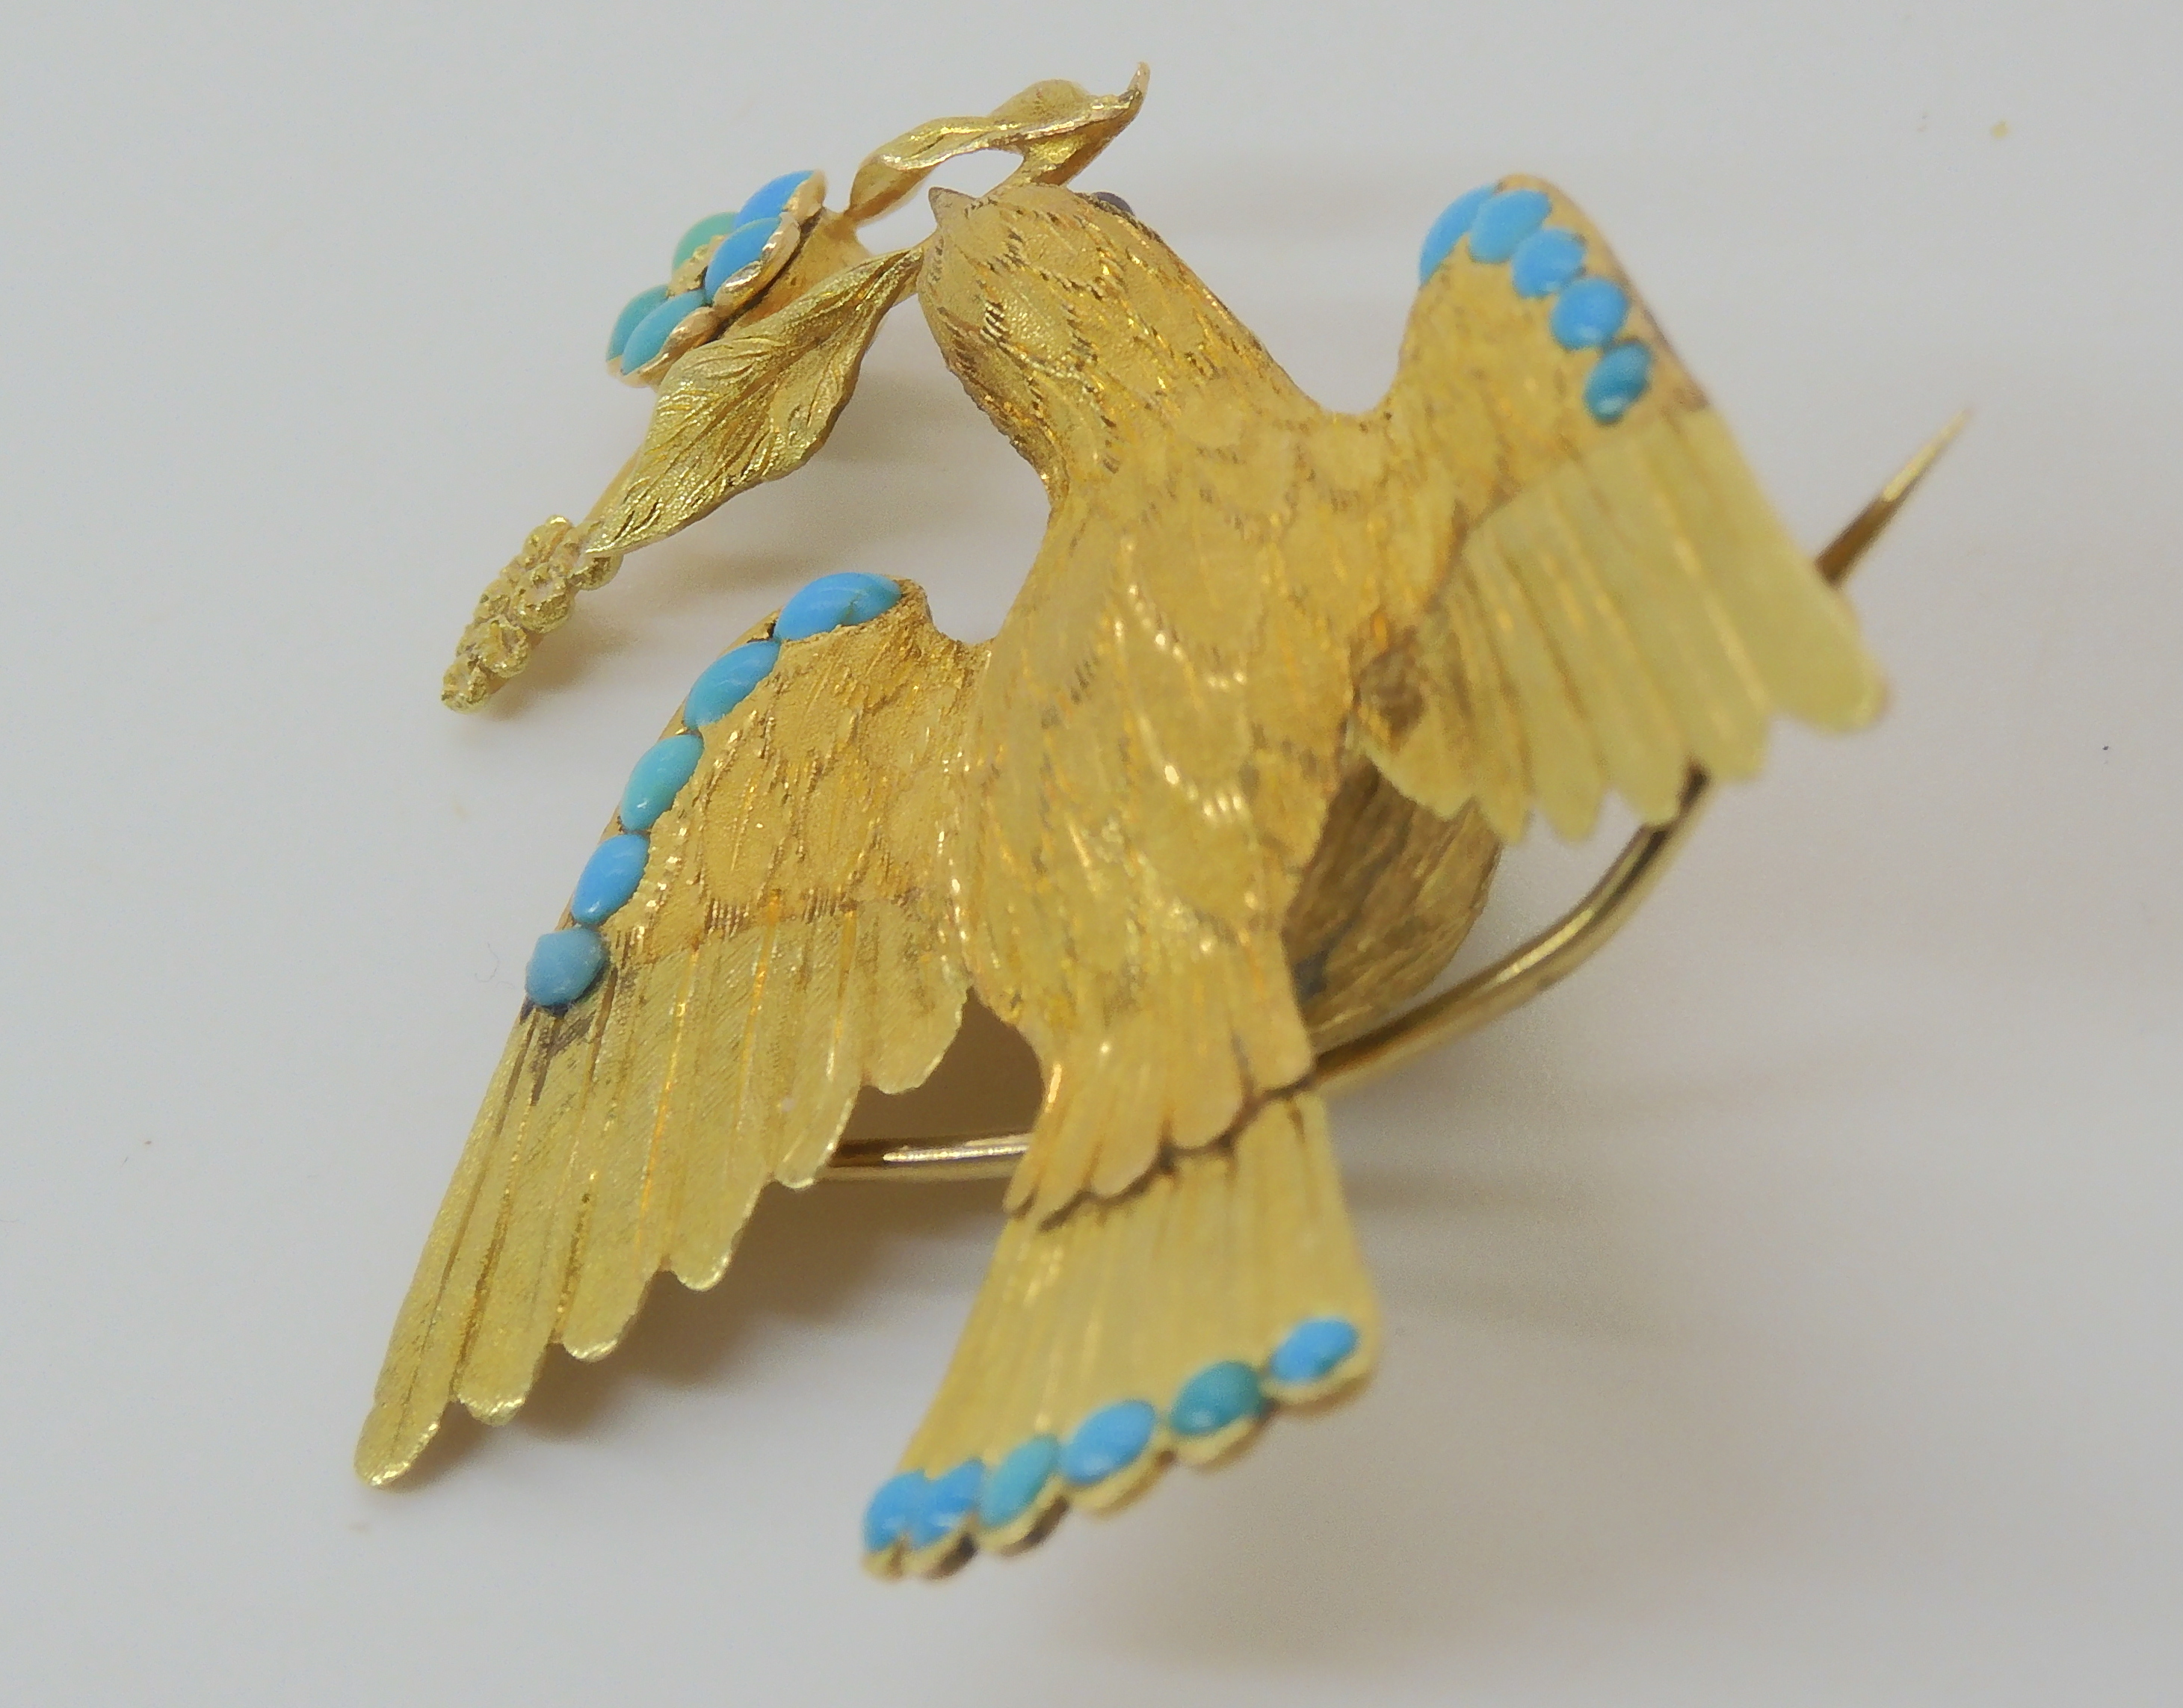 A VICTORIAN LOCKET BACK DOVE BROOCH SET WITH TURQUOISE craftsman made in yellow metal, with - Image 6 of 6